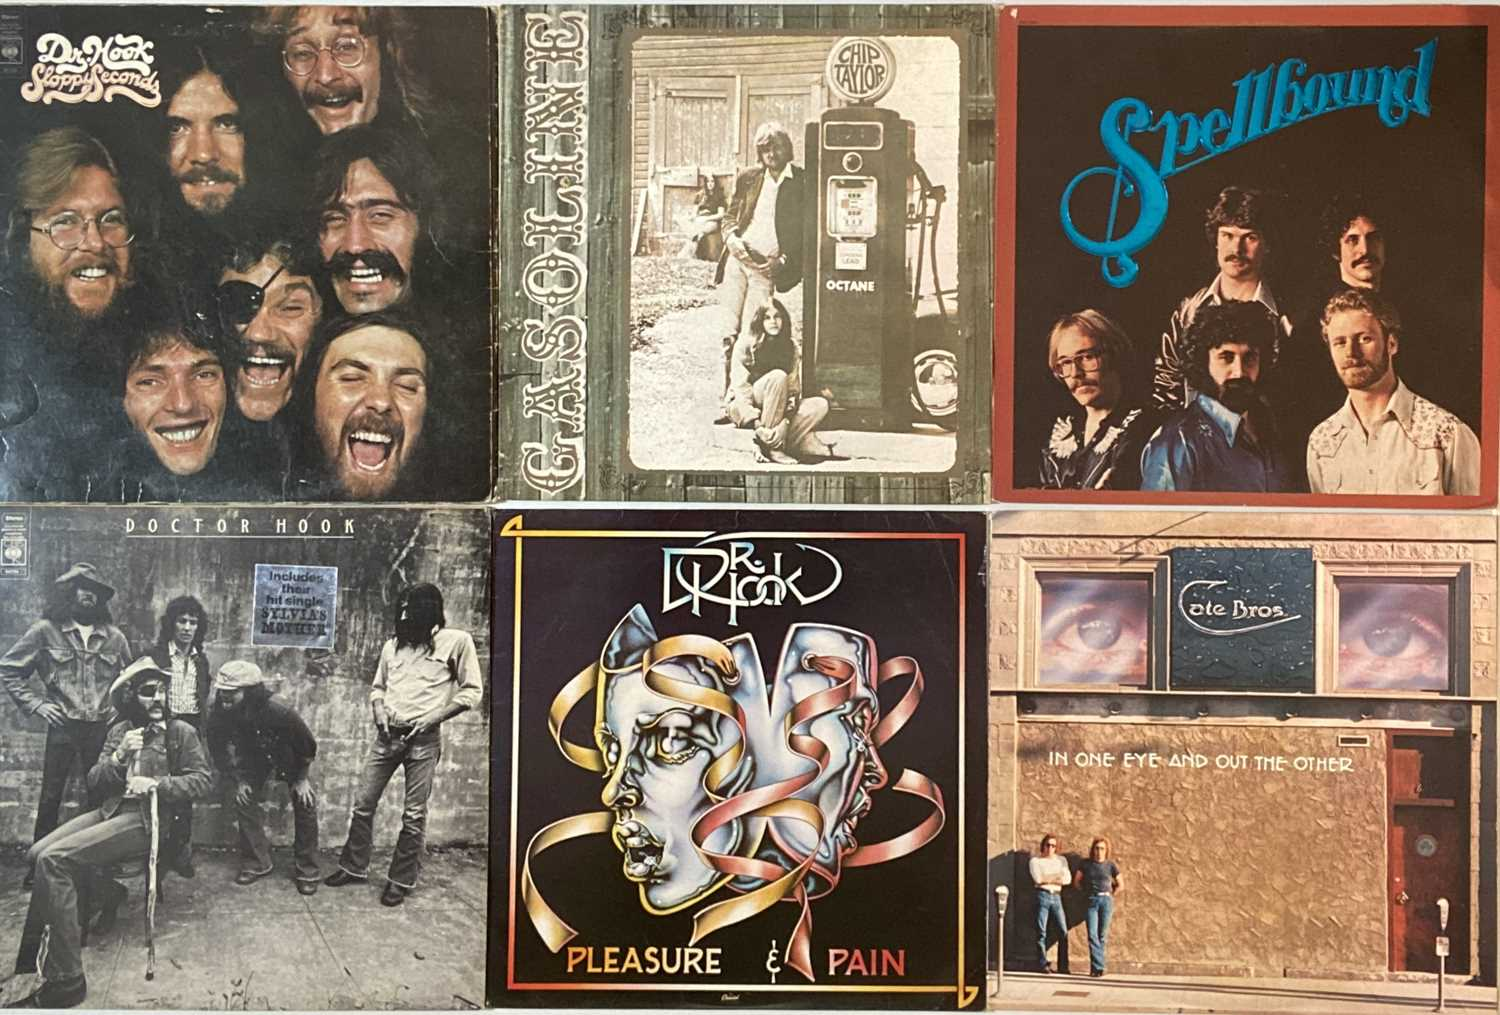 COUNTRY ROCK/R&R/AOR - LPs - Image 2 of 6